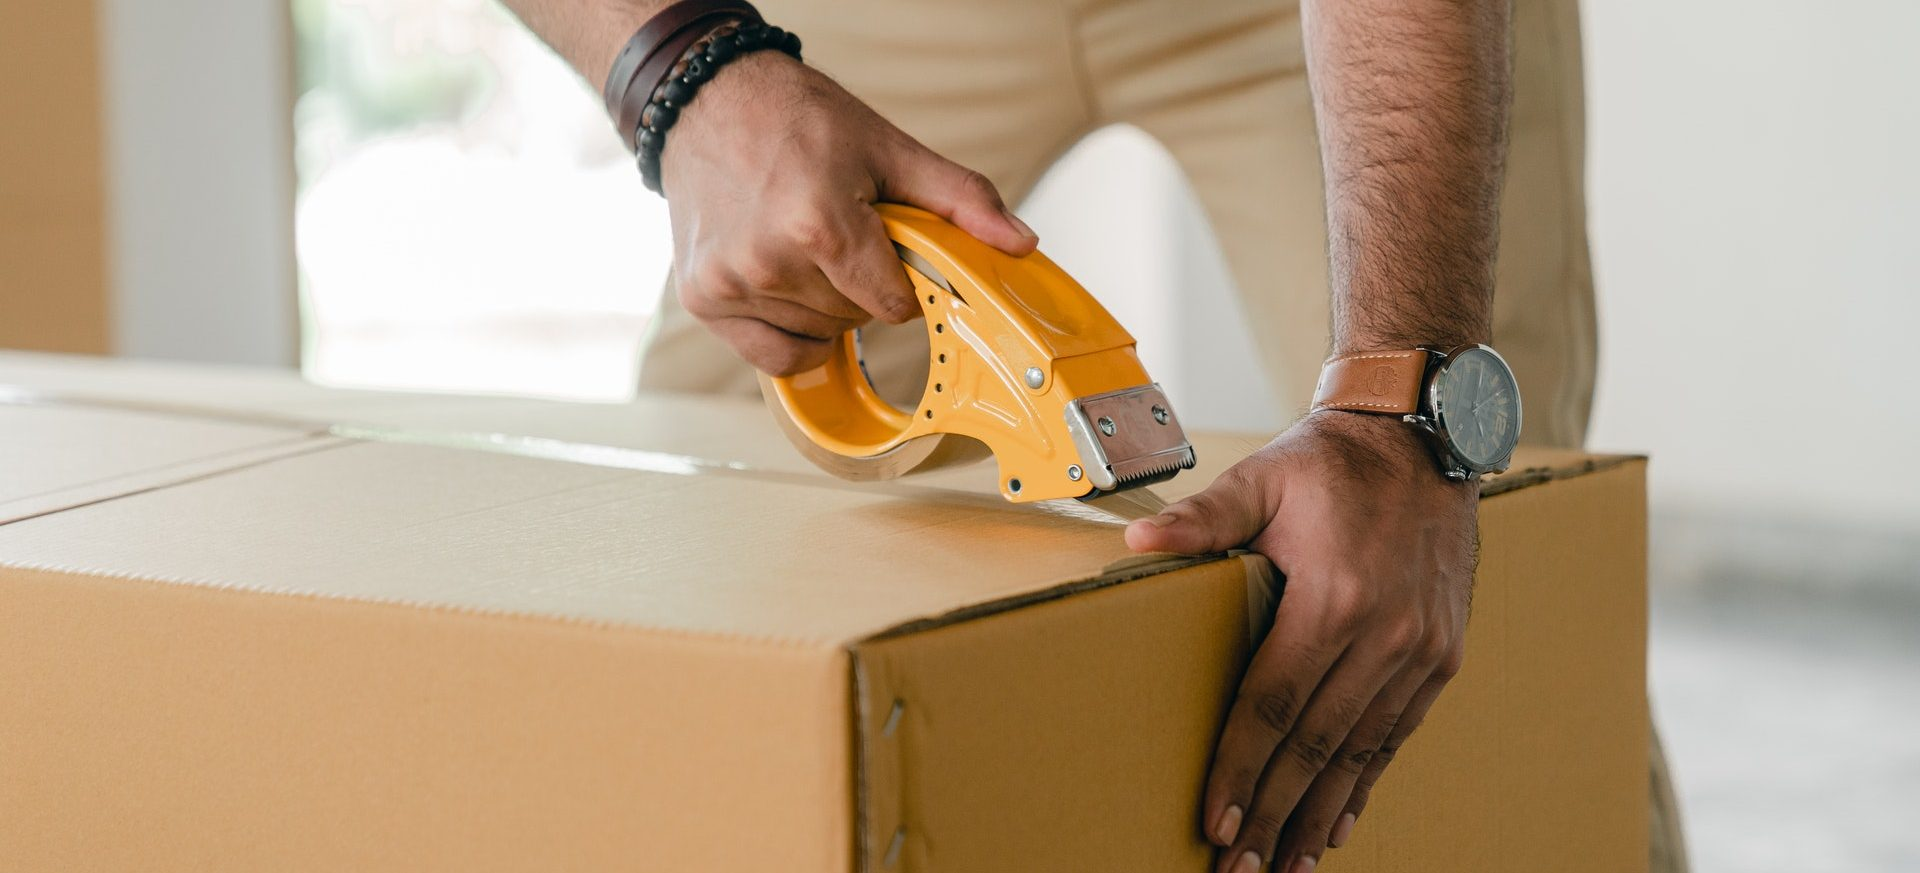 A man duct taping a moving box shut.